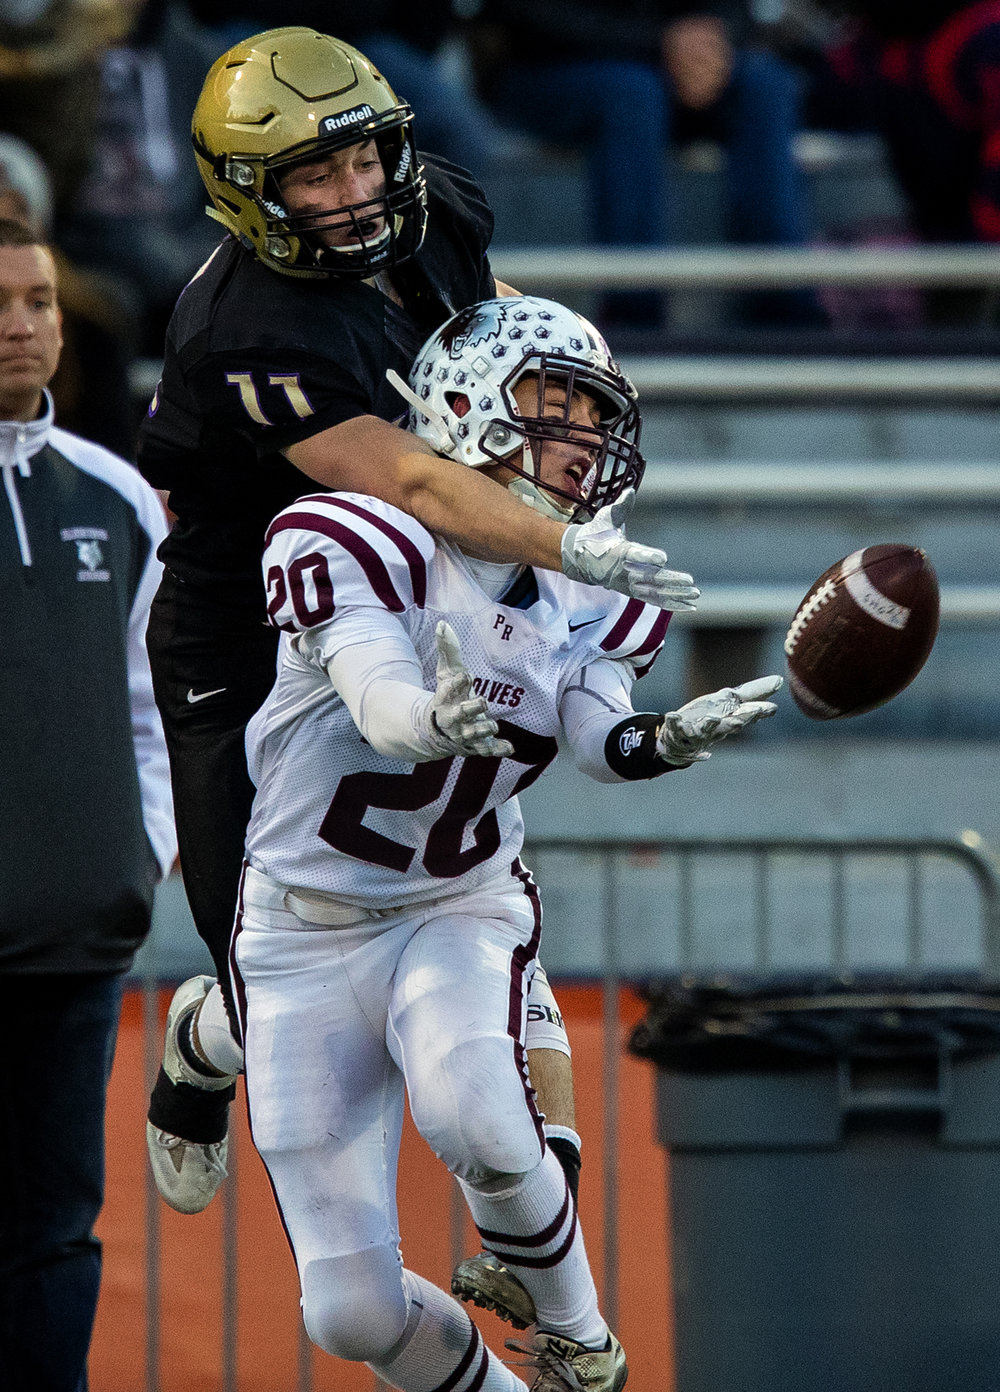 Sacred Heart-Griffin's Jack Boll is blocked by Prairie Ridge's Justin Mikolajczewski as he tries to catch a pass during the Class 6A championship game at Memorial Stadium in Champaign, Ill., Friday, Nov. 26, 2016.